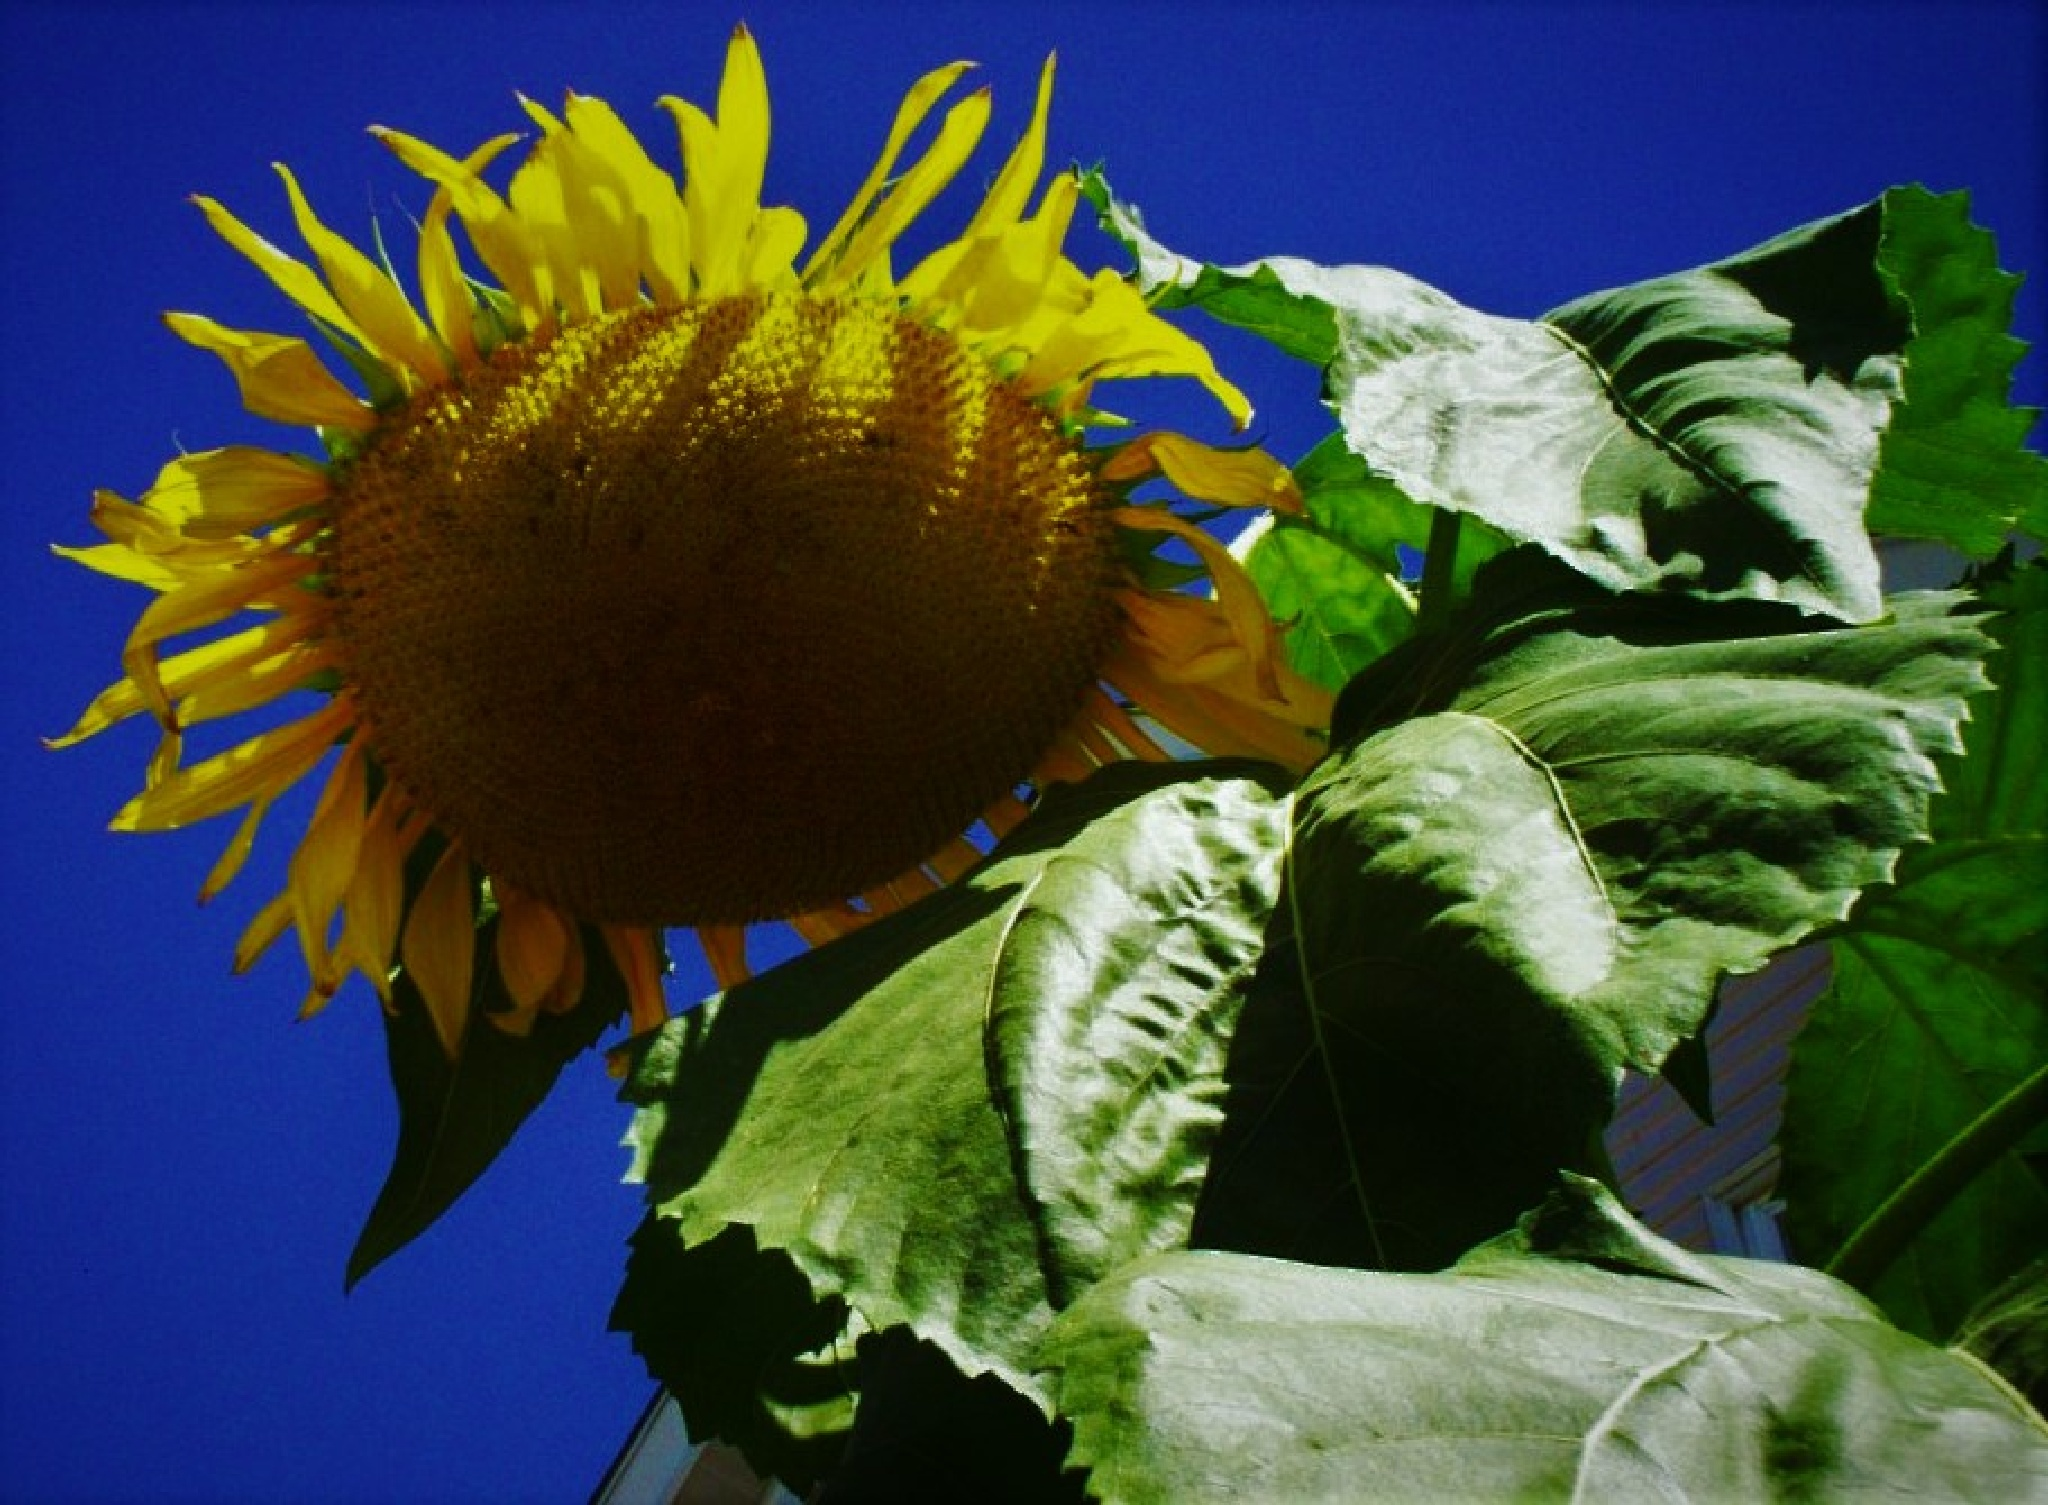 Giant Sunflower II by Dshawn732